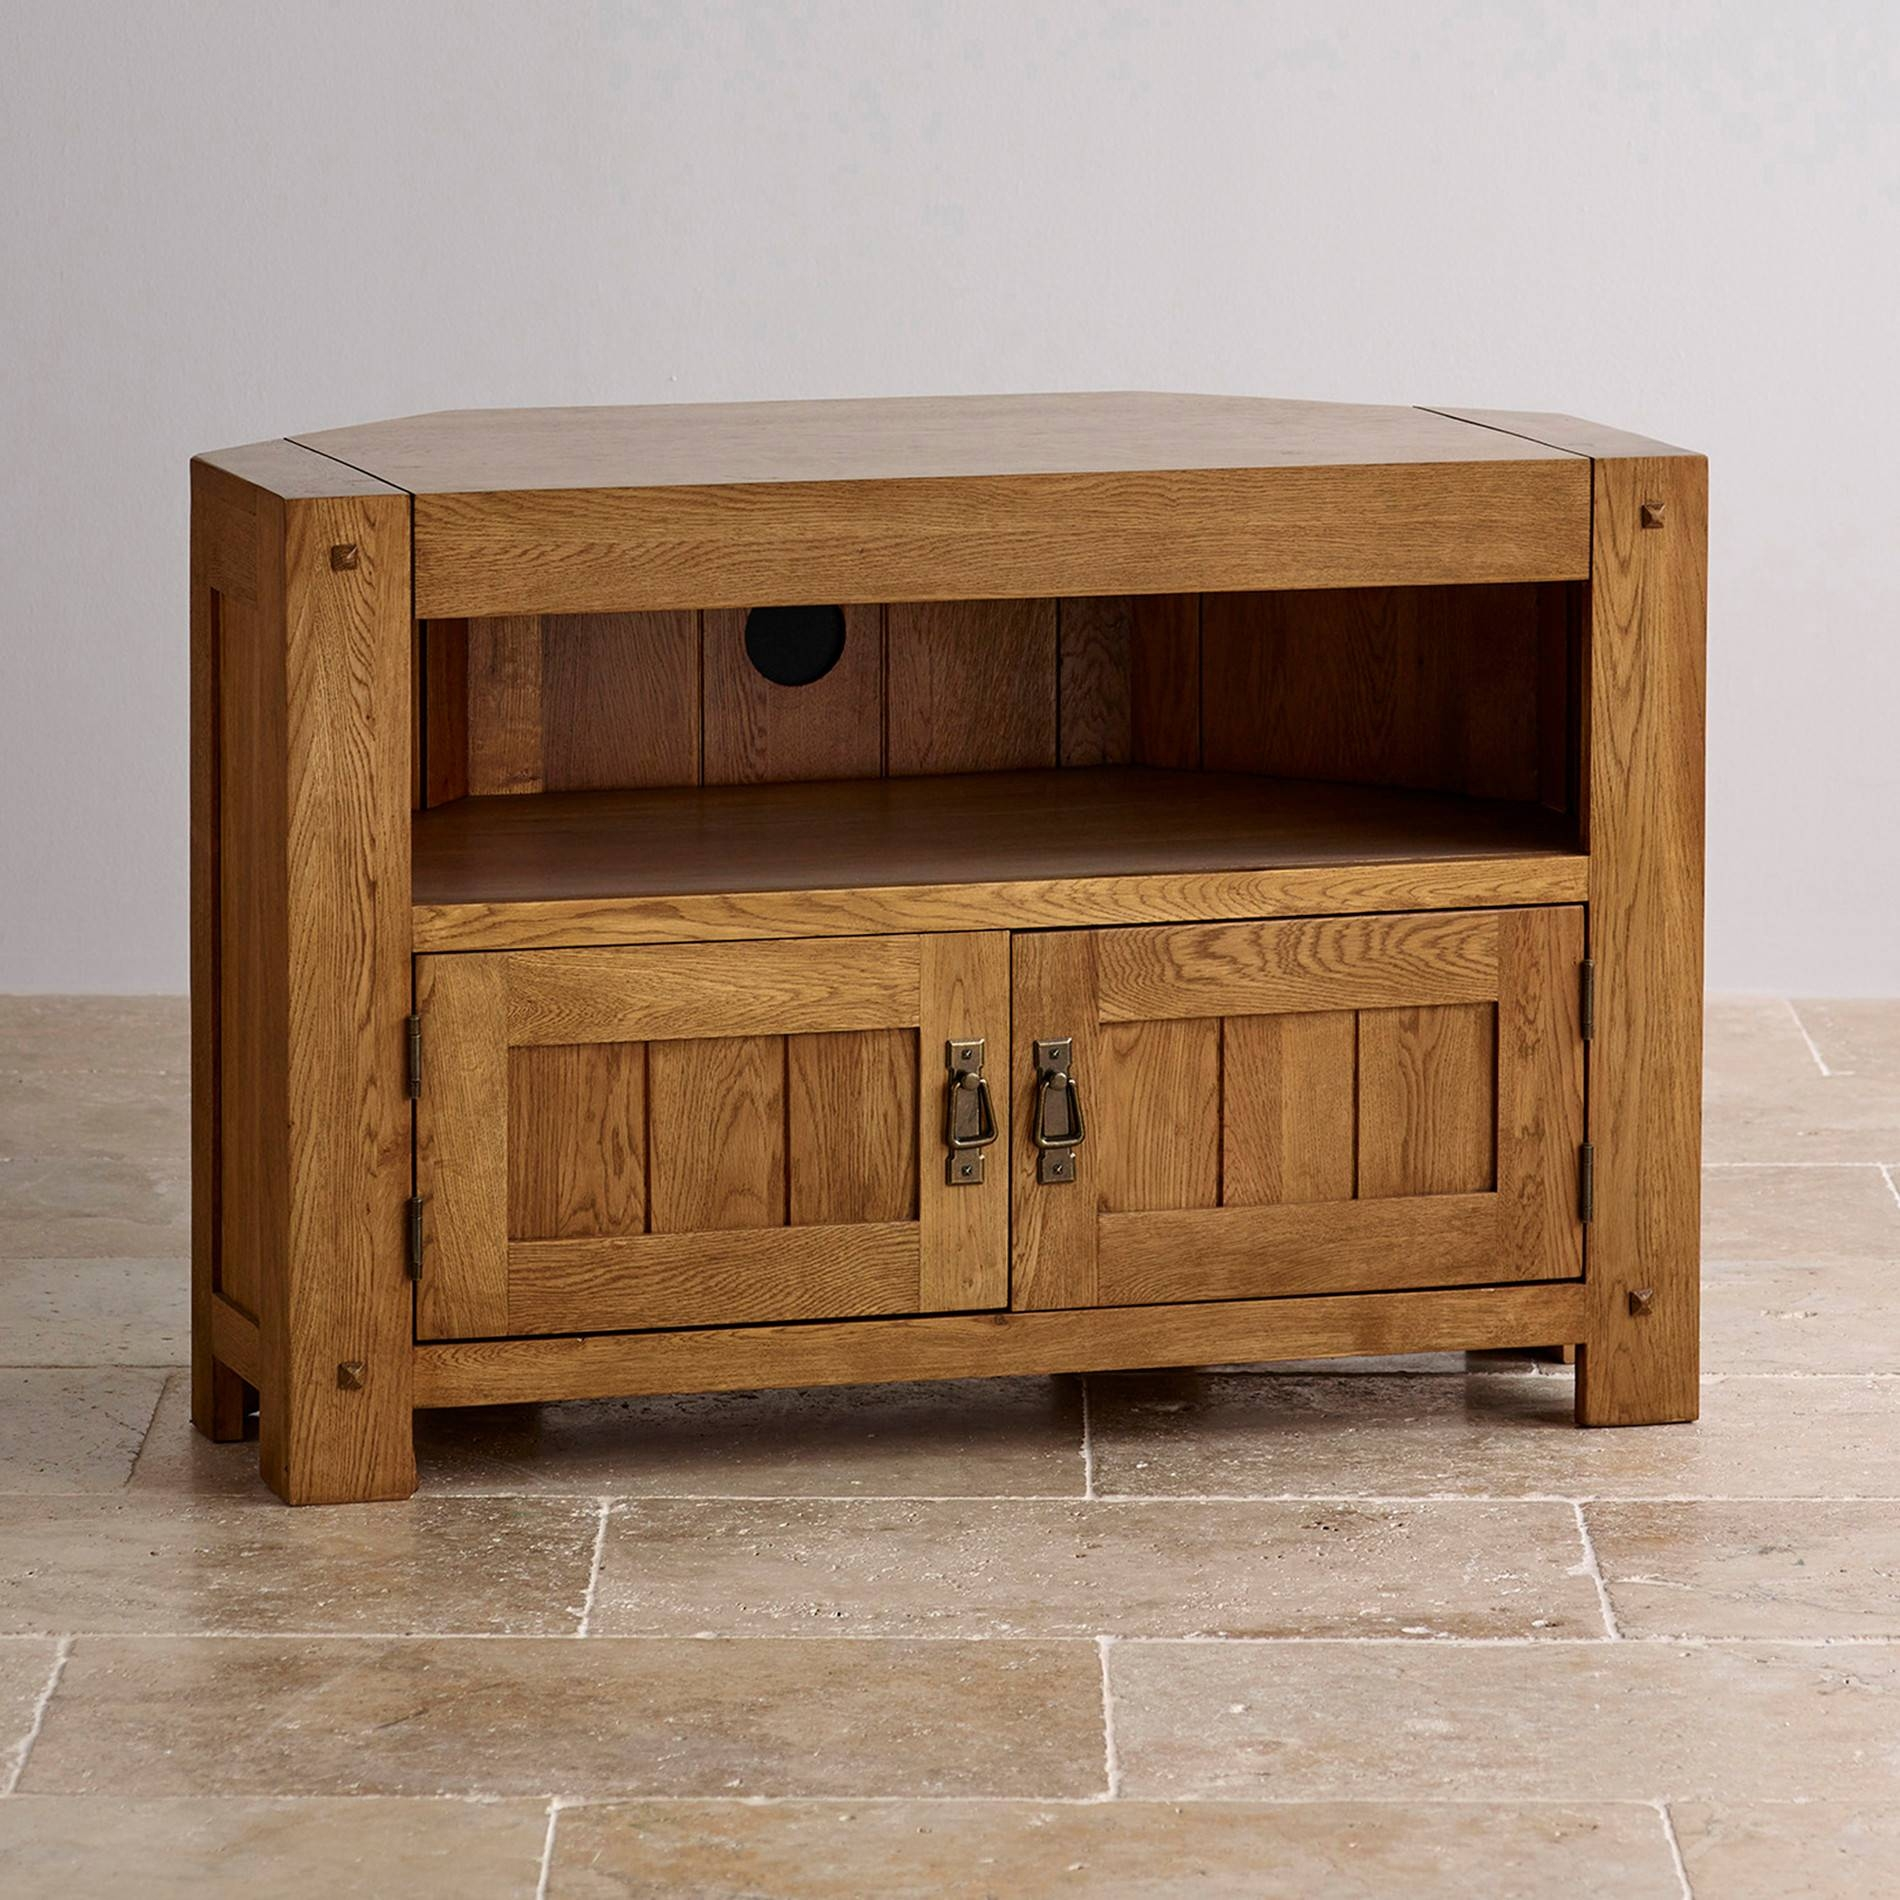 Tv Cabinets & Units | 100% Solid Oak | Oak Furniture Land within Oak Effect Corner Tv Stand (Image 10 of 15)